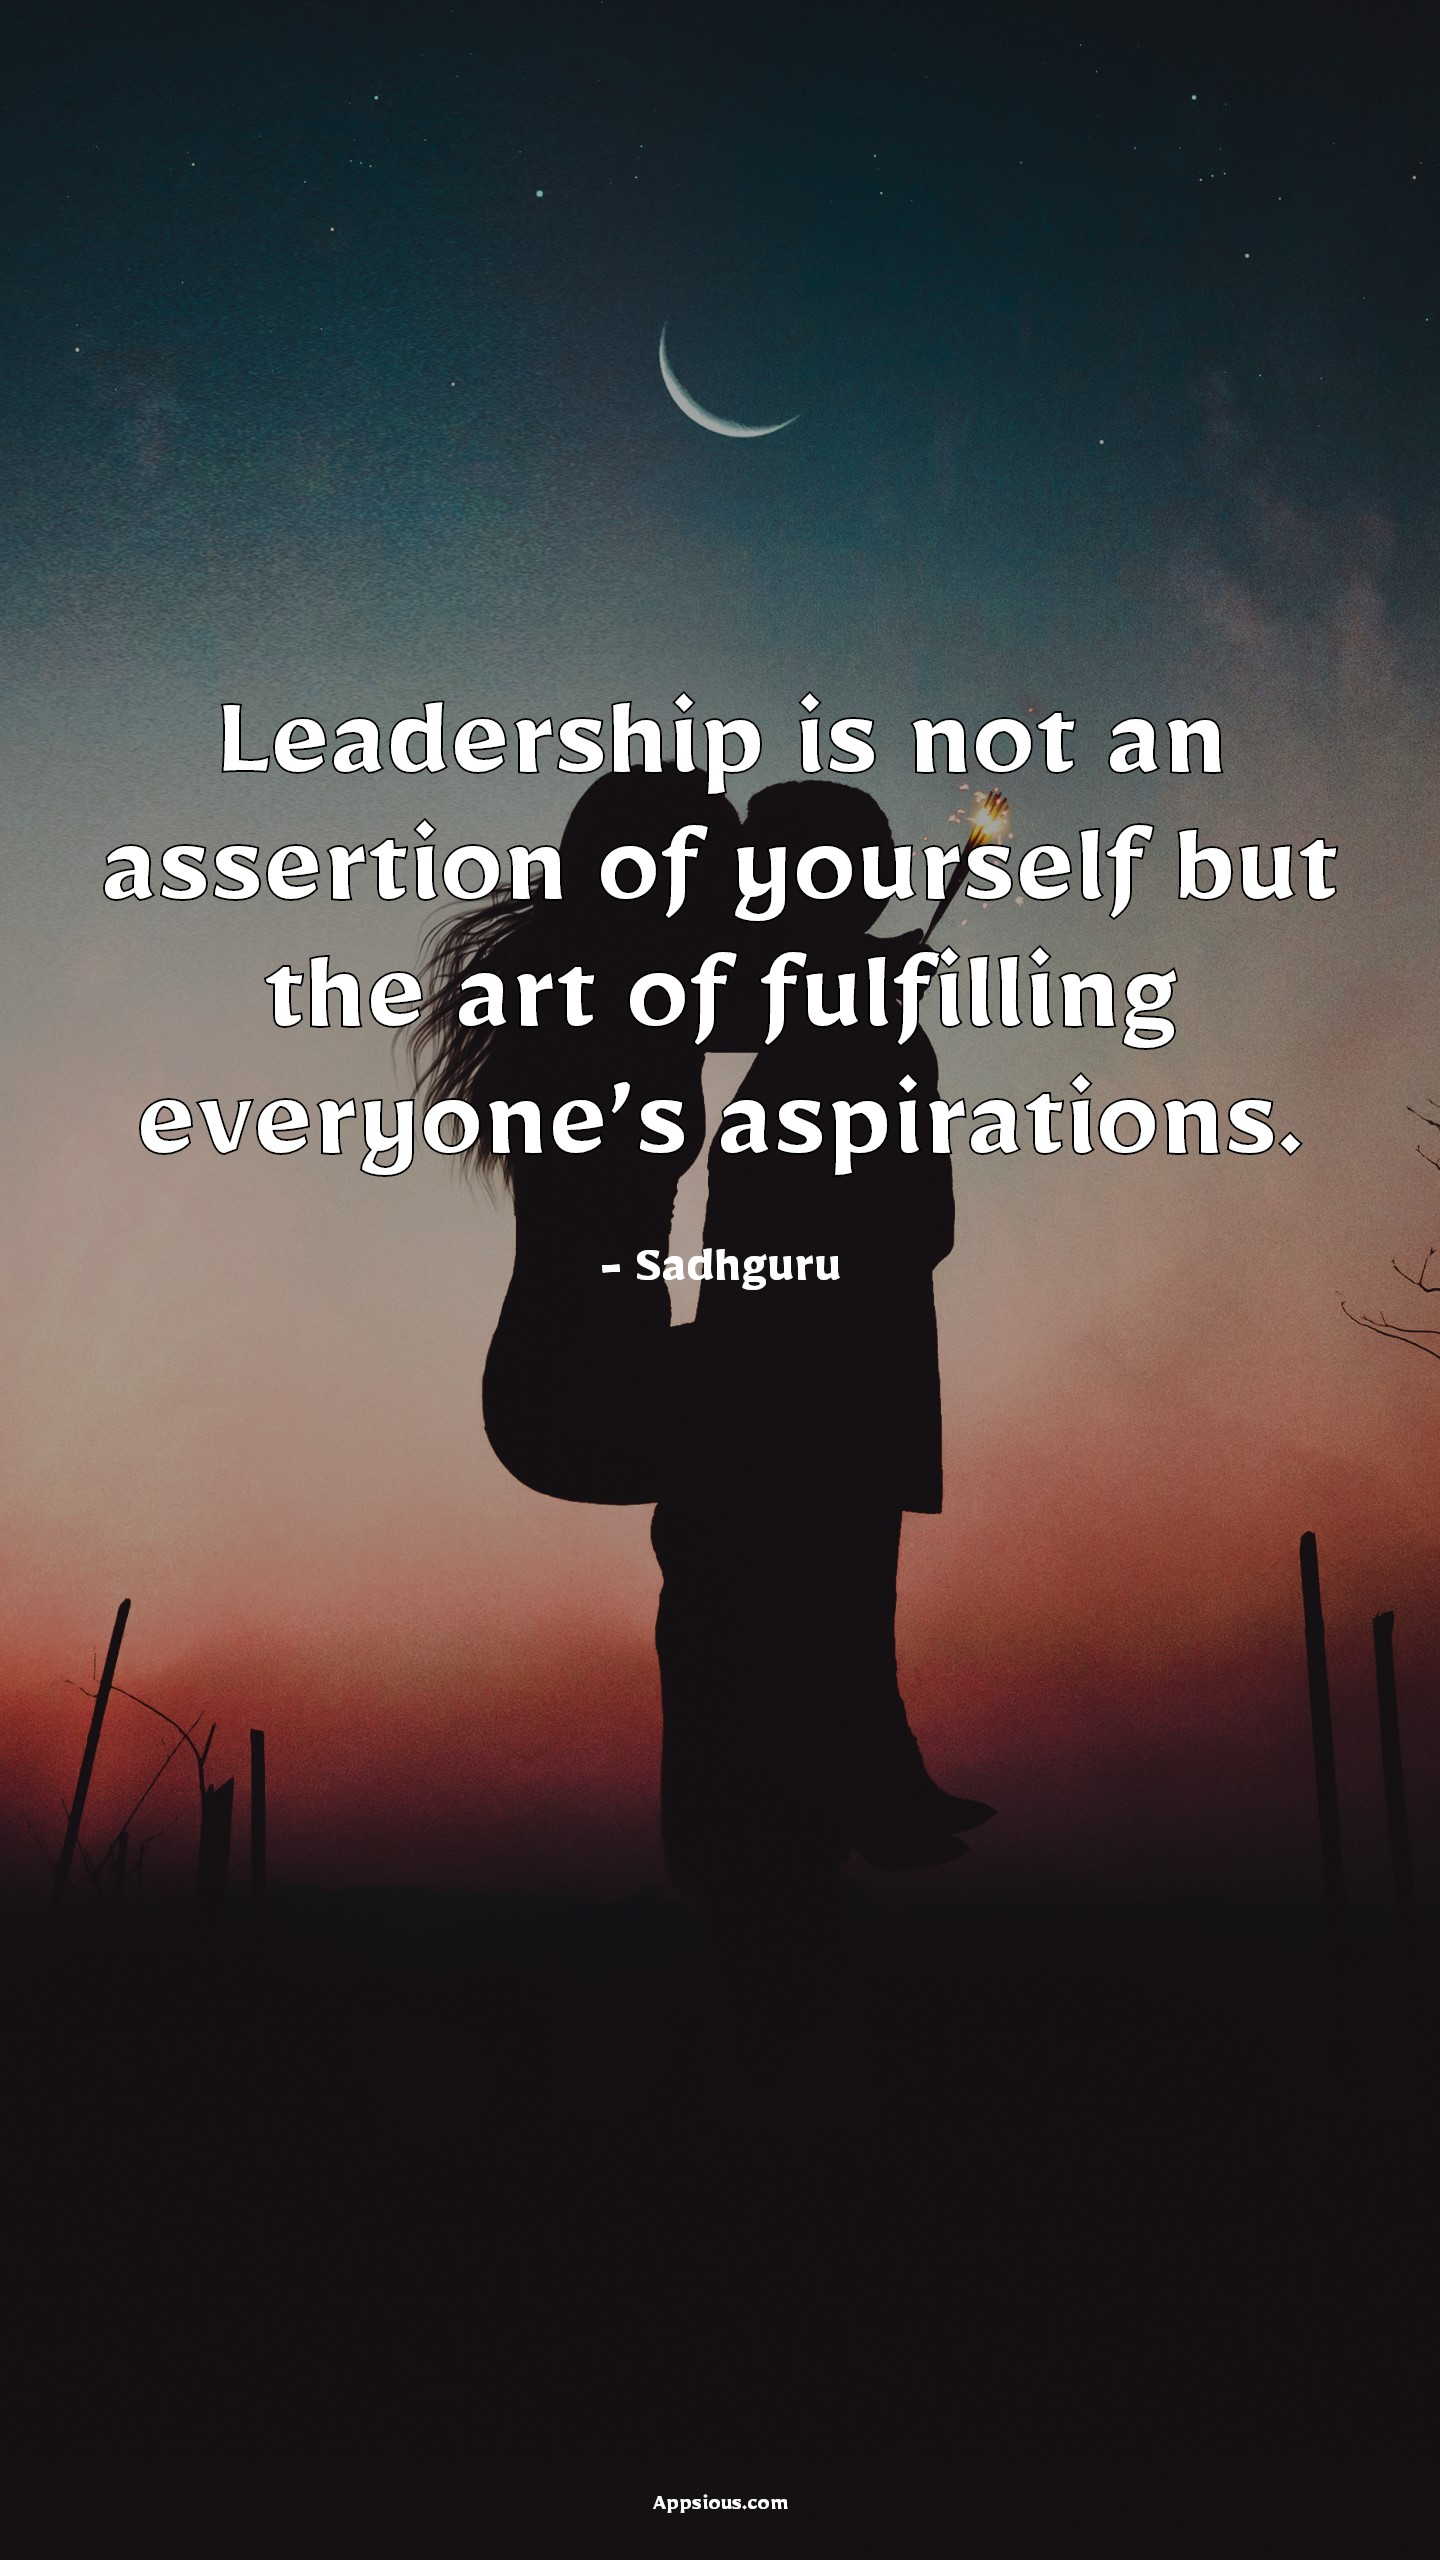 Leadership is not an assertion of yourself but the art of fulfilling everyone's aspirations.